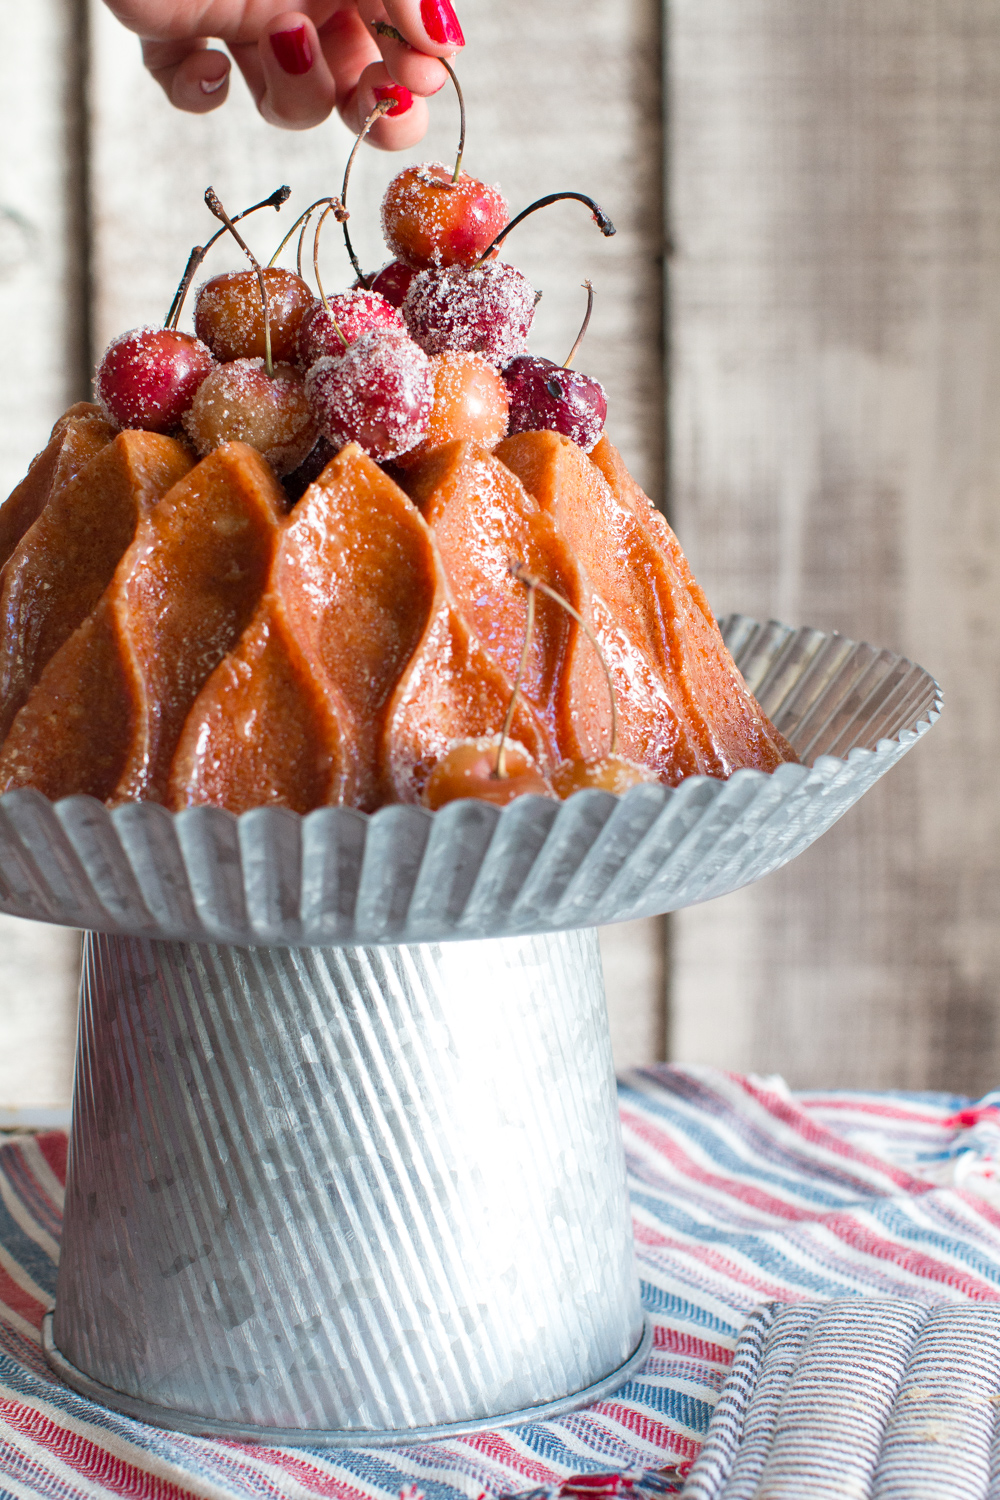 Top the brown butter bourbon bundt cake with grilled cherries